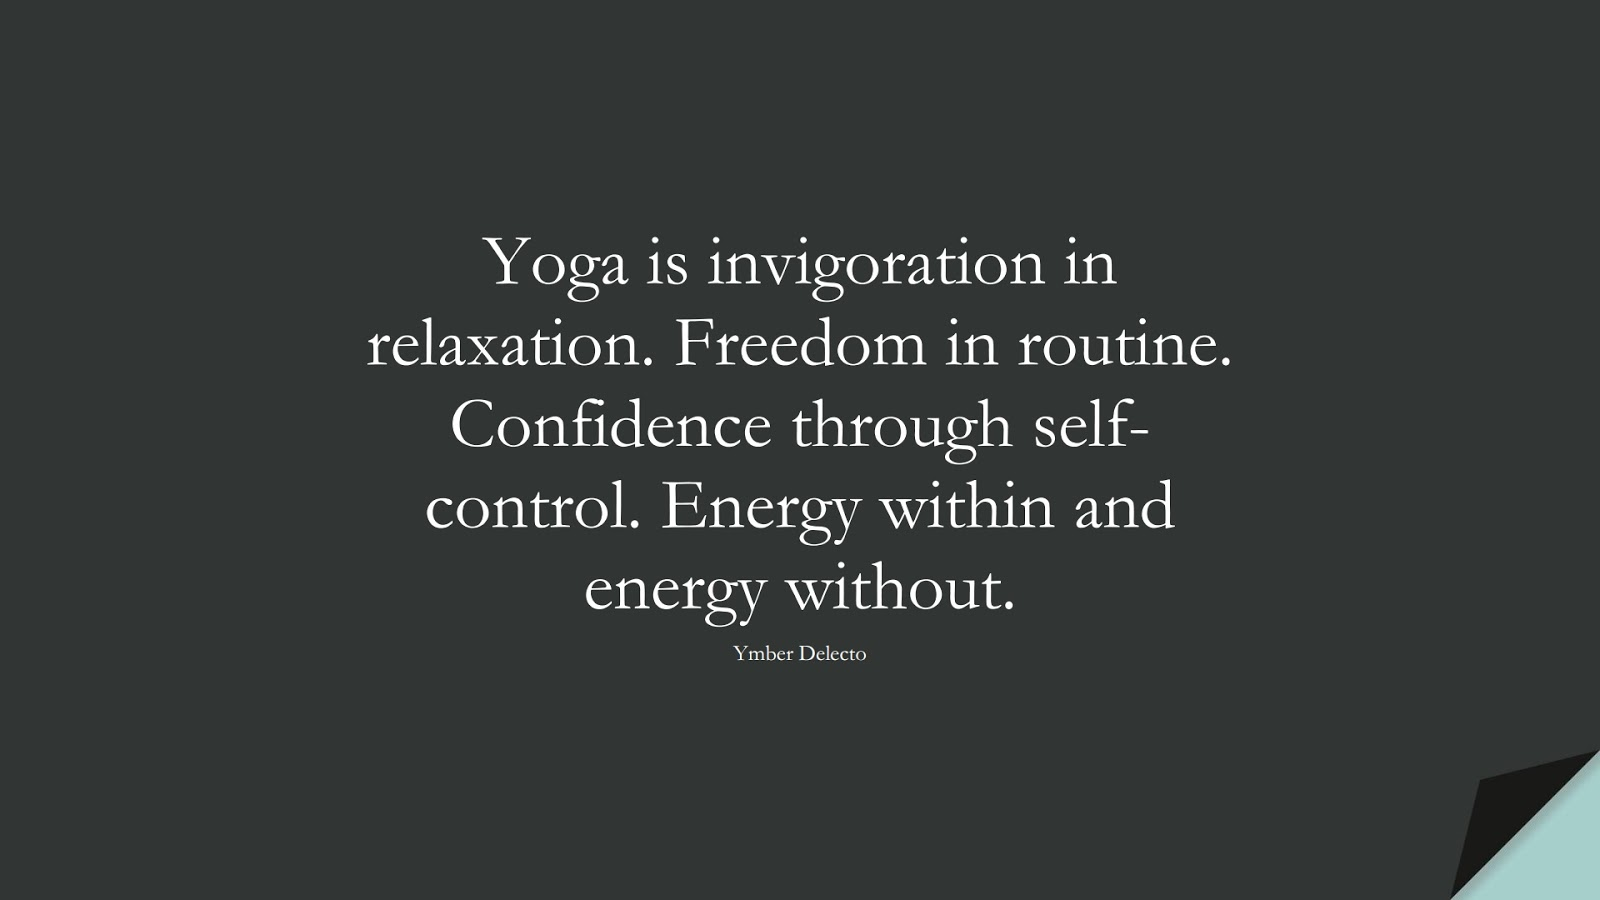 Yoga is invigoration in relaxation. Freedom in routine. Confidence through self-control. Energy within and energy without. (Ymber Delecto);  #HealthQuotes